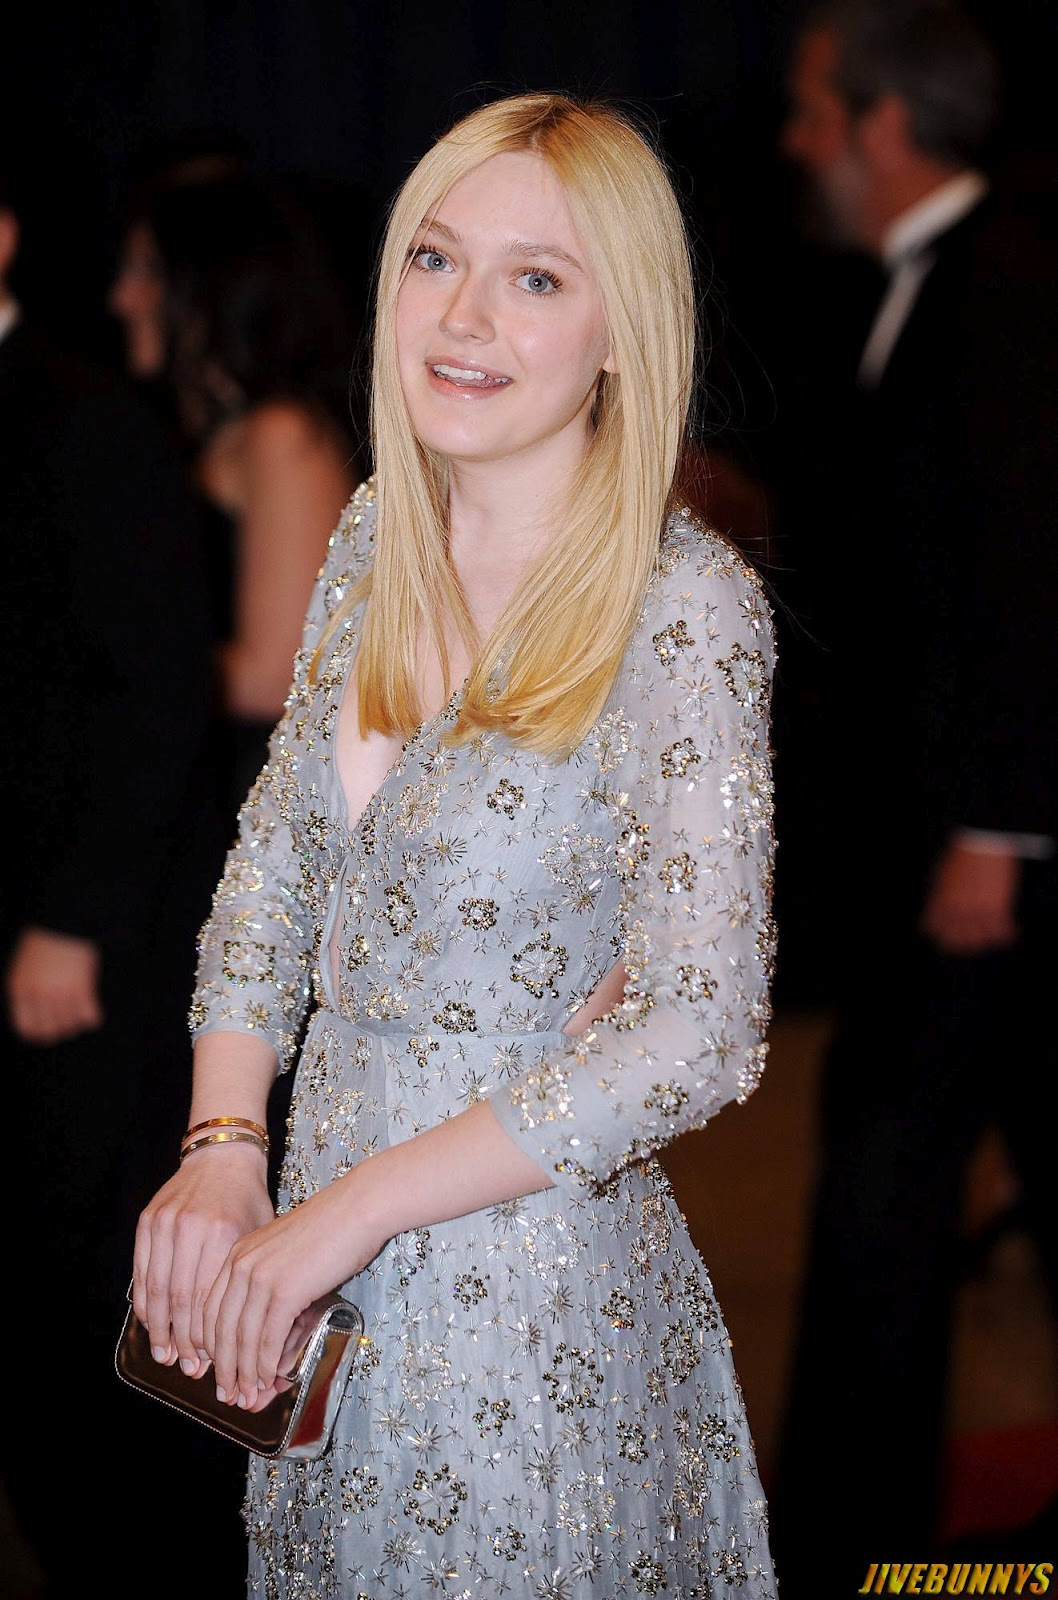 Dakota Fanning Twilight Actress S And Image Gallery